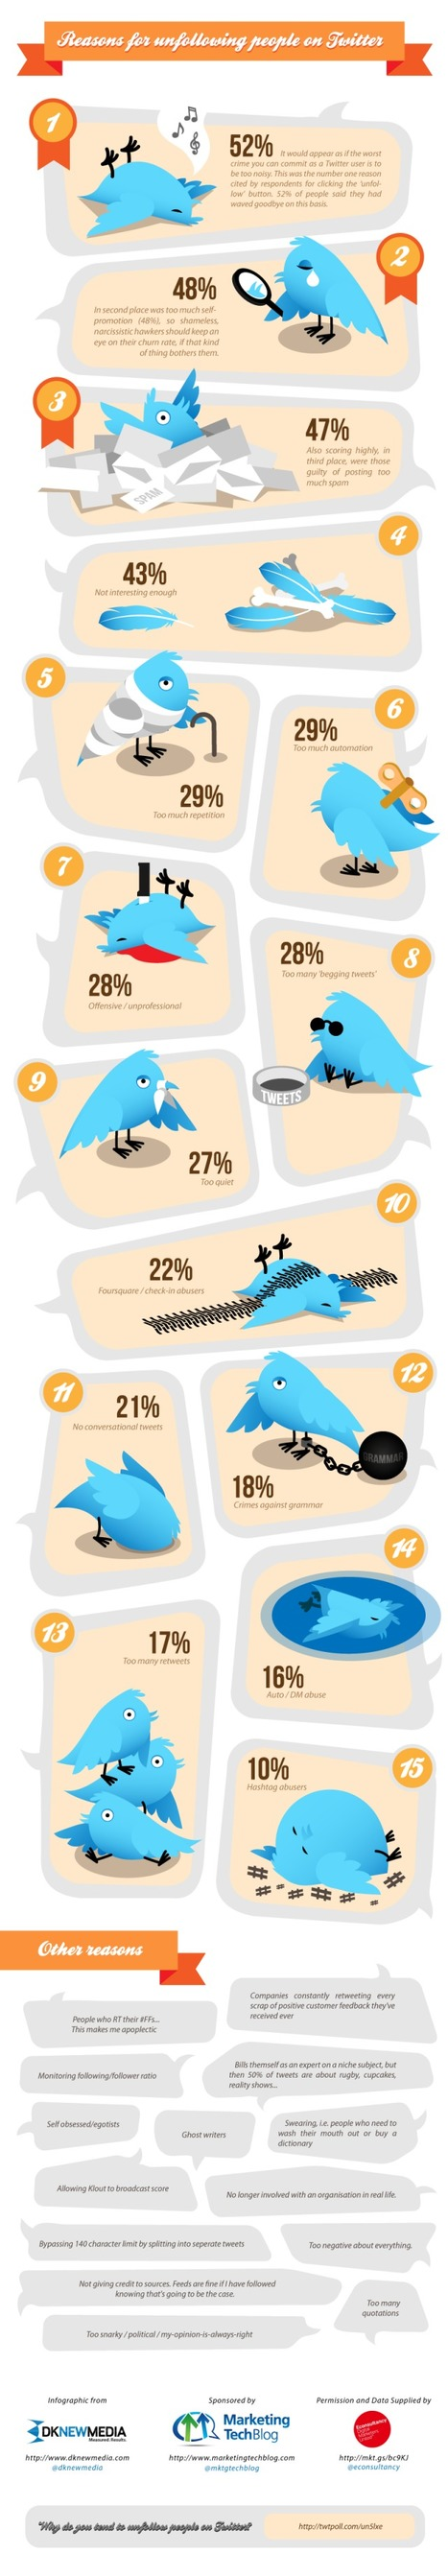 Reasons for unfollowing people on Twitter [Info-graphic] | The Perfect Storm Team | Scoop.it